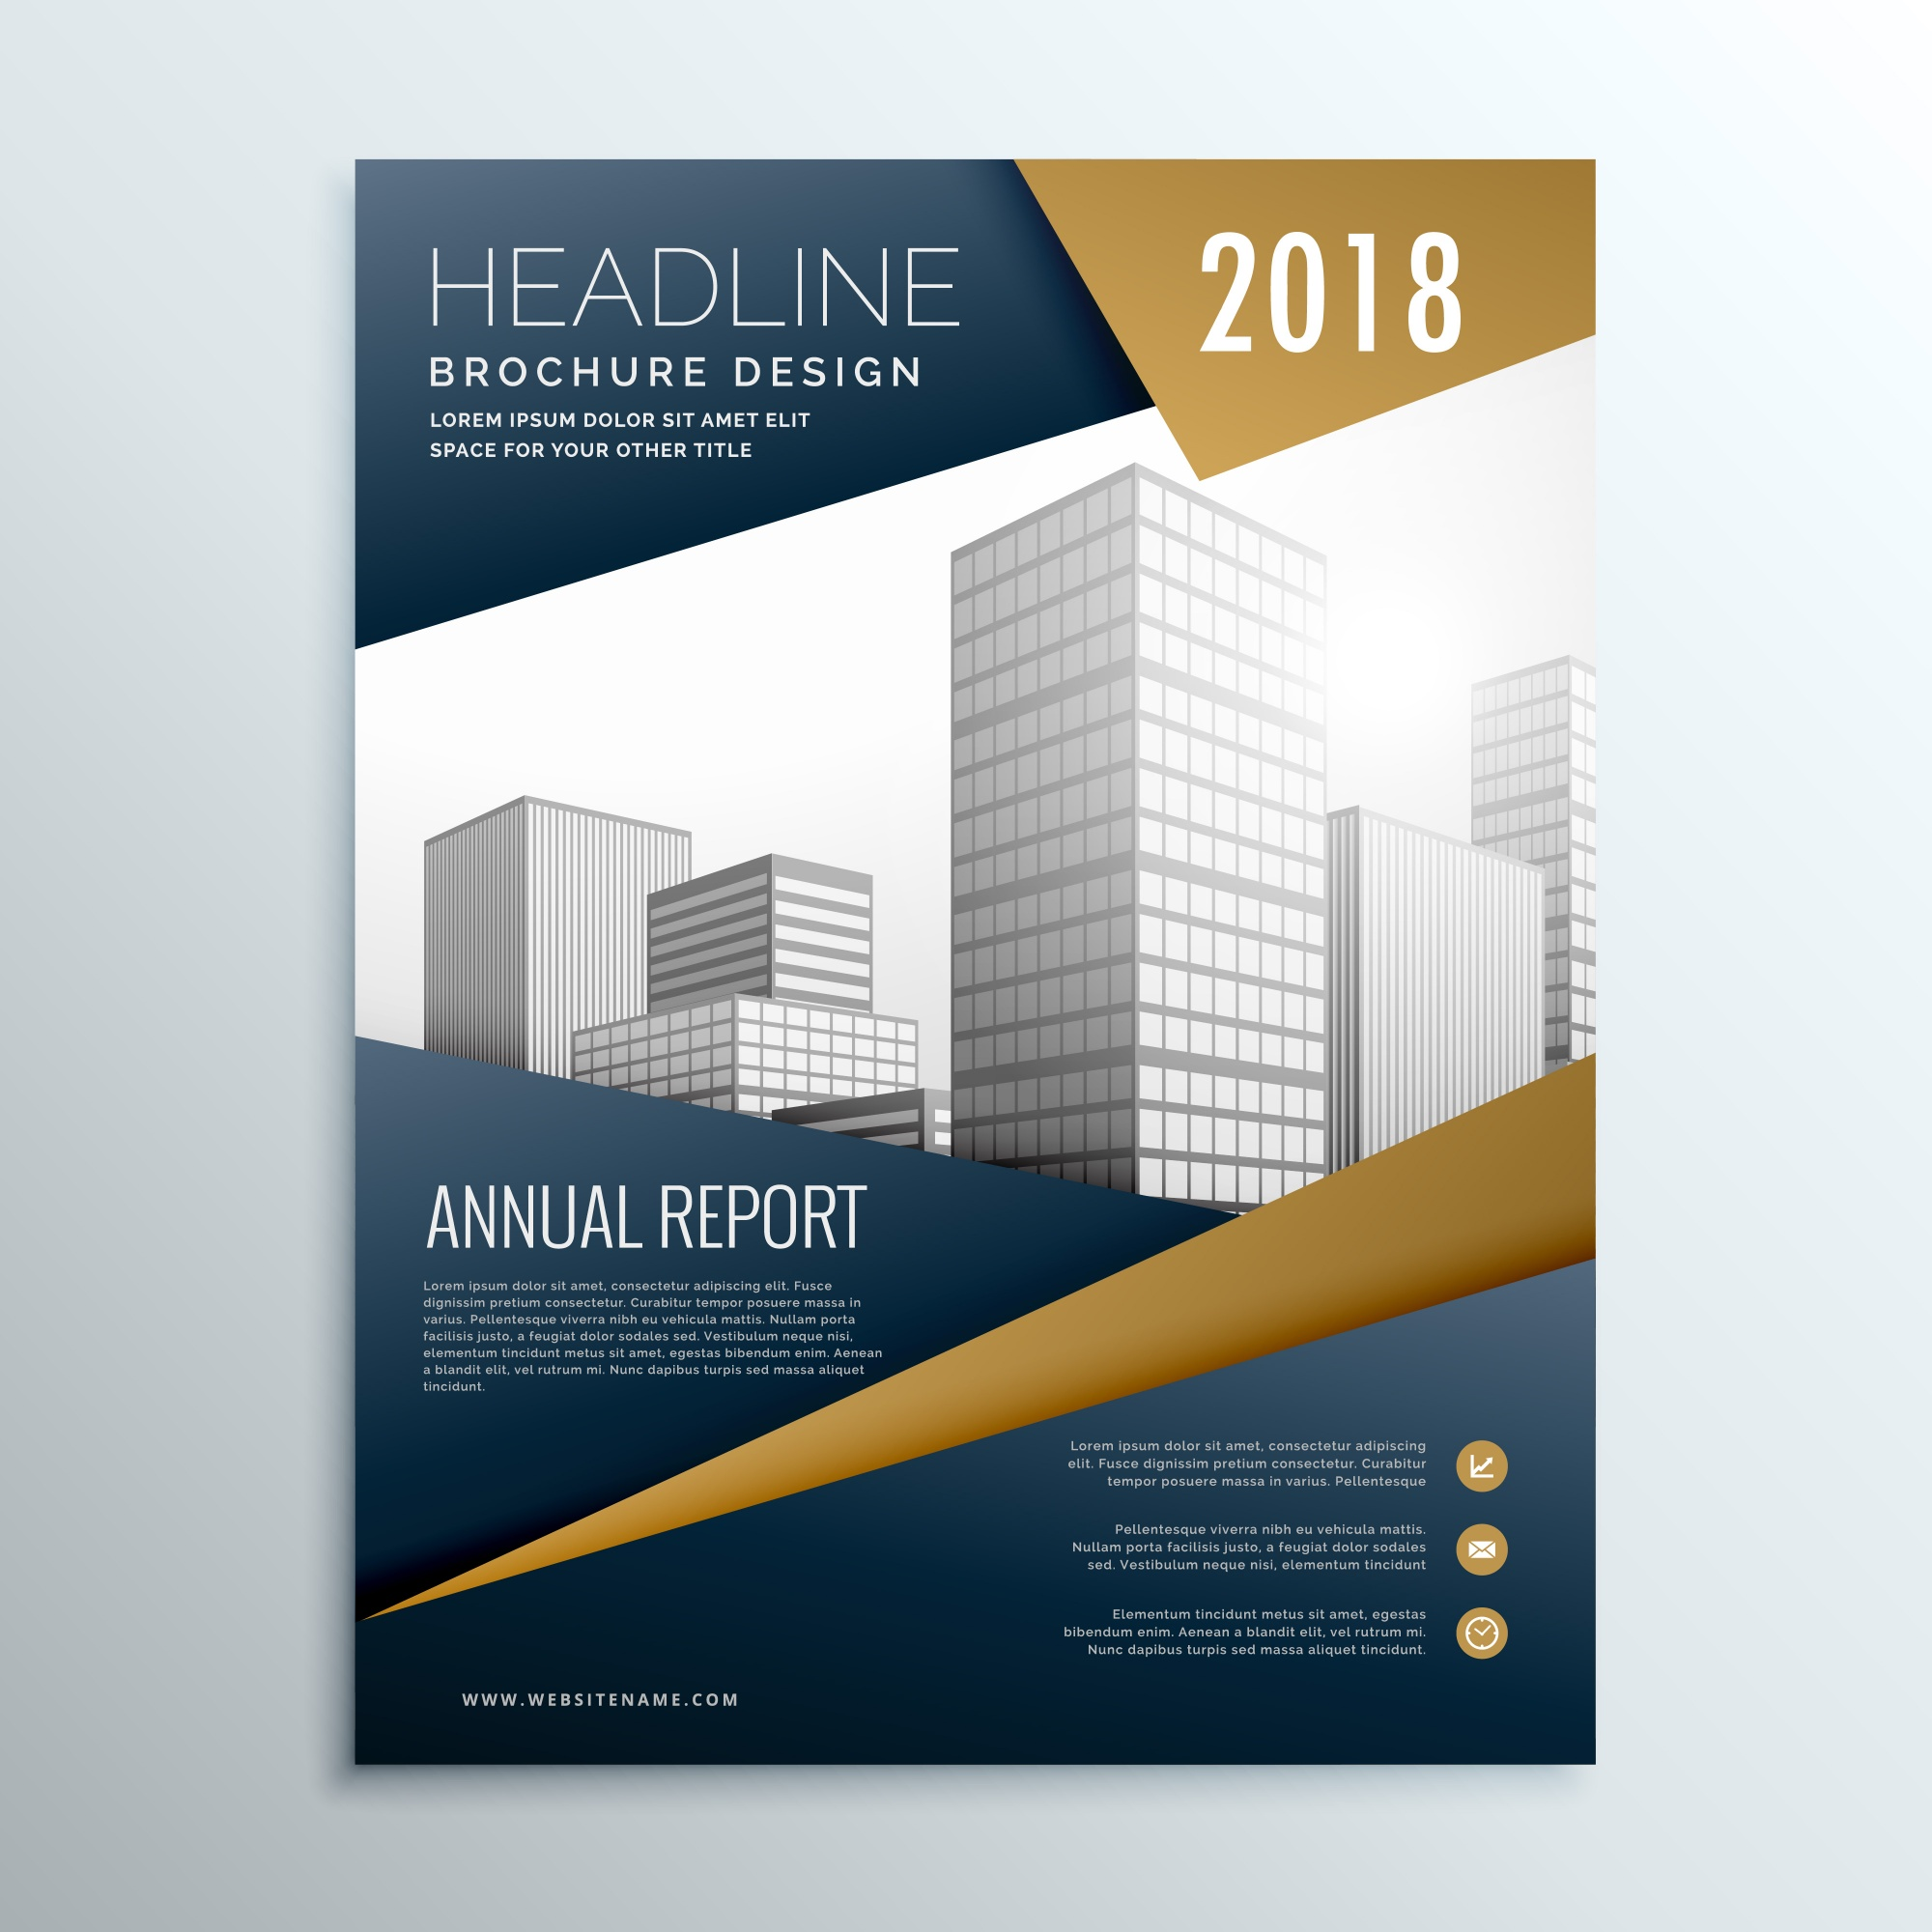 Business brochure with brown and black tones